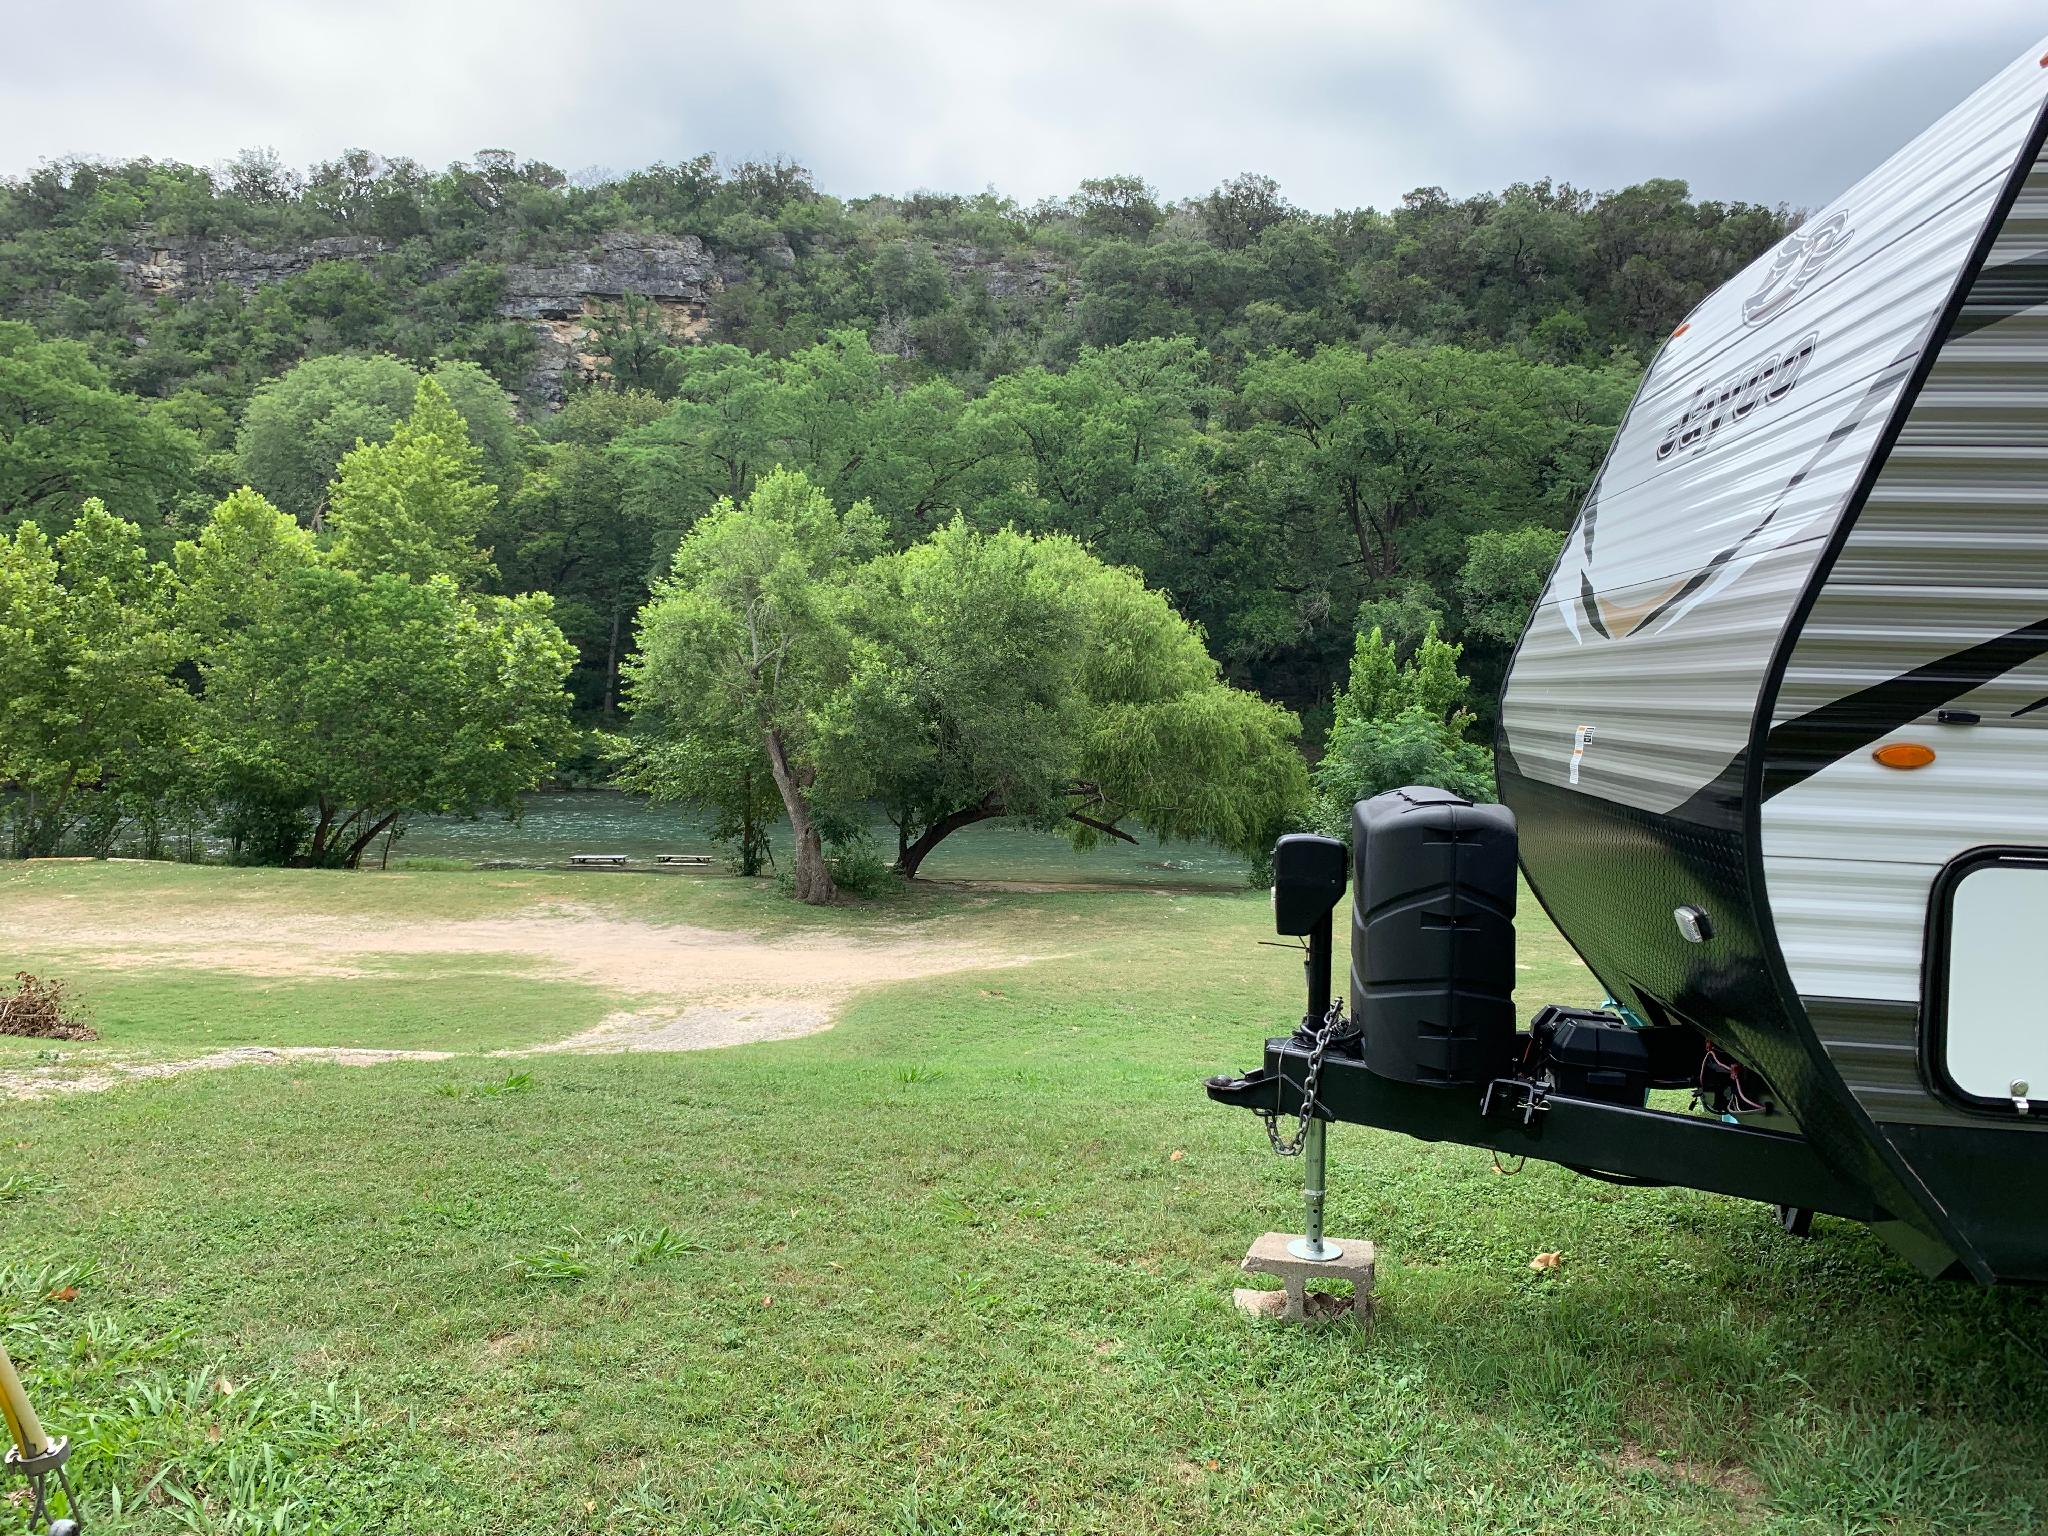 ★ River Front RV Getaway - Float the Guadalupe!